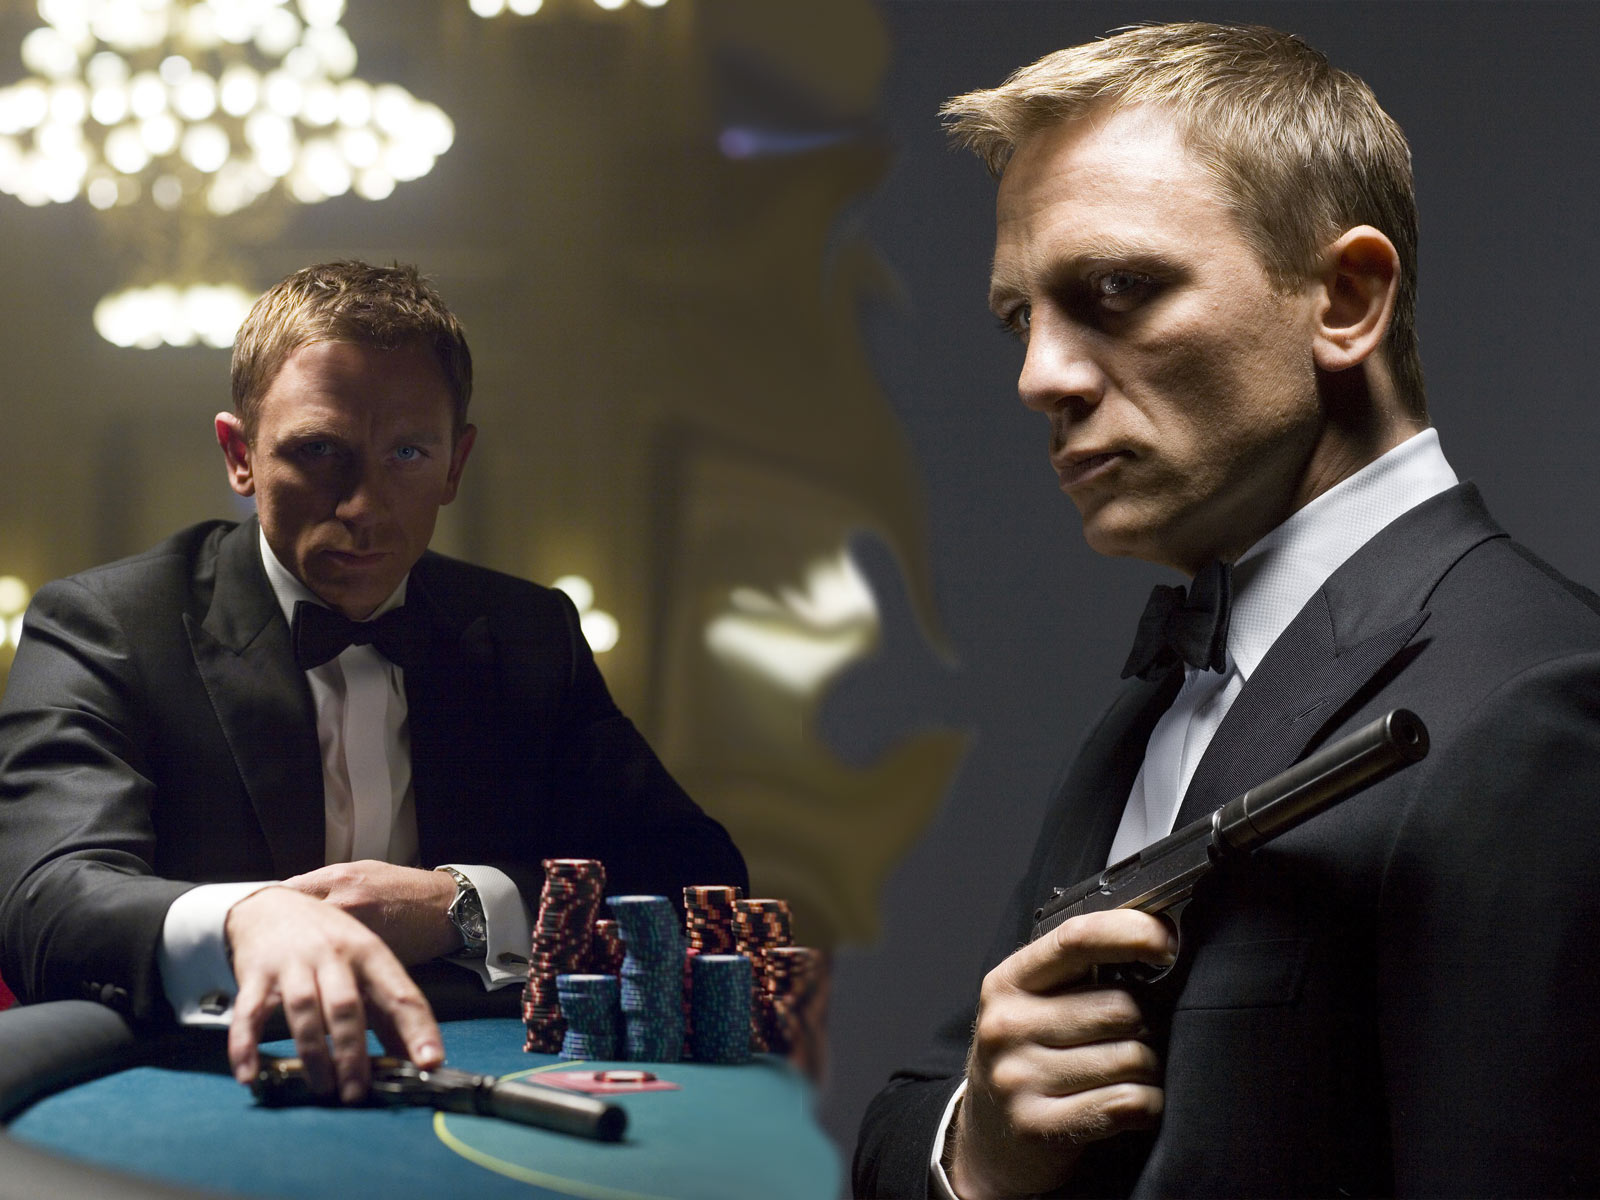 http://4.bp.blogspot.com/-lqs5q88kPZU/UJ4h7jxSG5I/AAAAAAAAE_4/rJ2okOn27O4/s1600/wallpapers_daniel_craig_en_james_bond_casino_royale_3.jpg